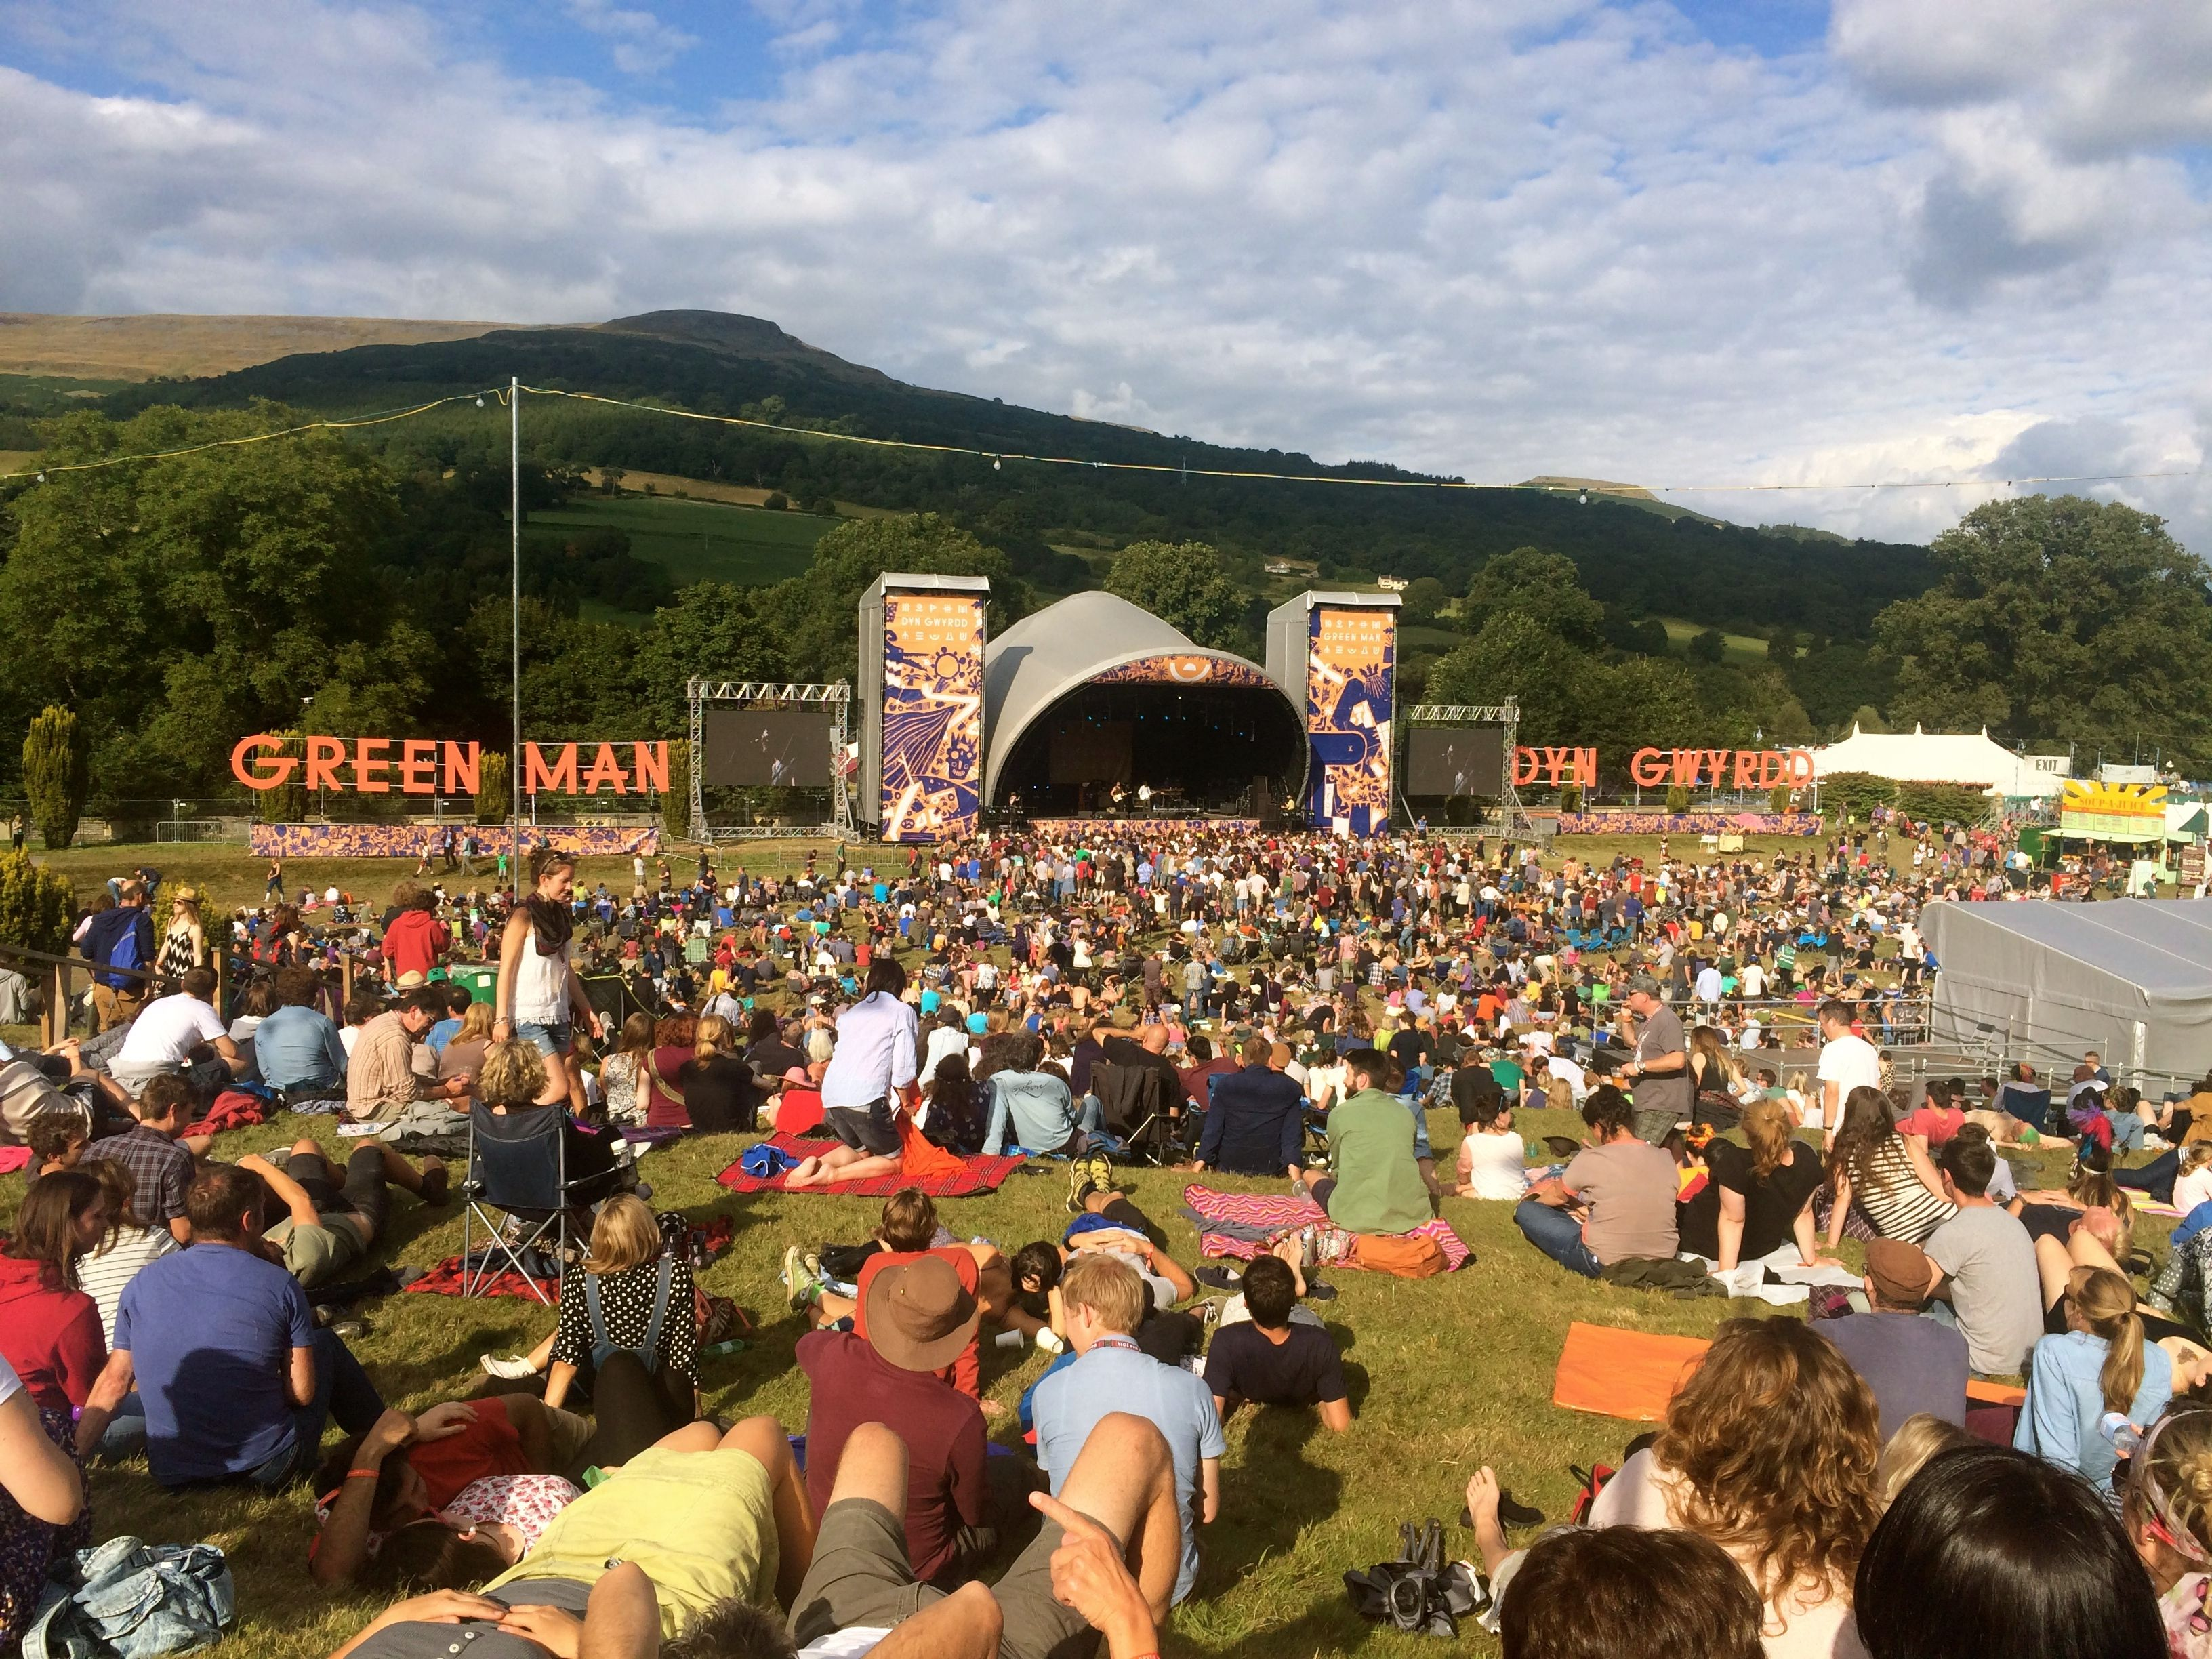 green 2014 festival review we are cardiff | News to Go 3 | Pinterest ...